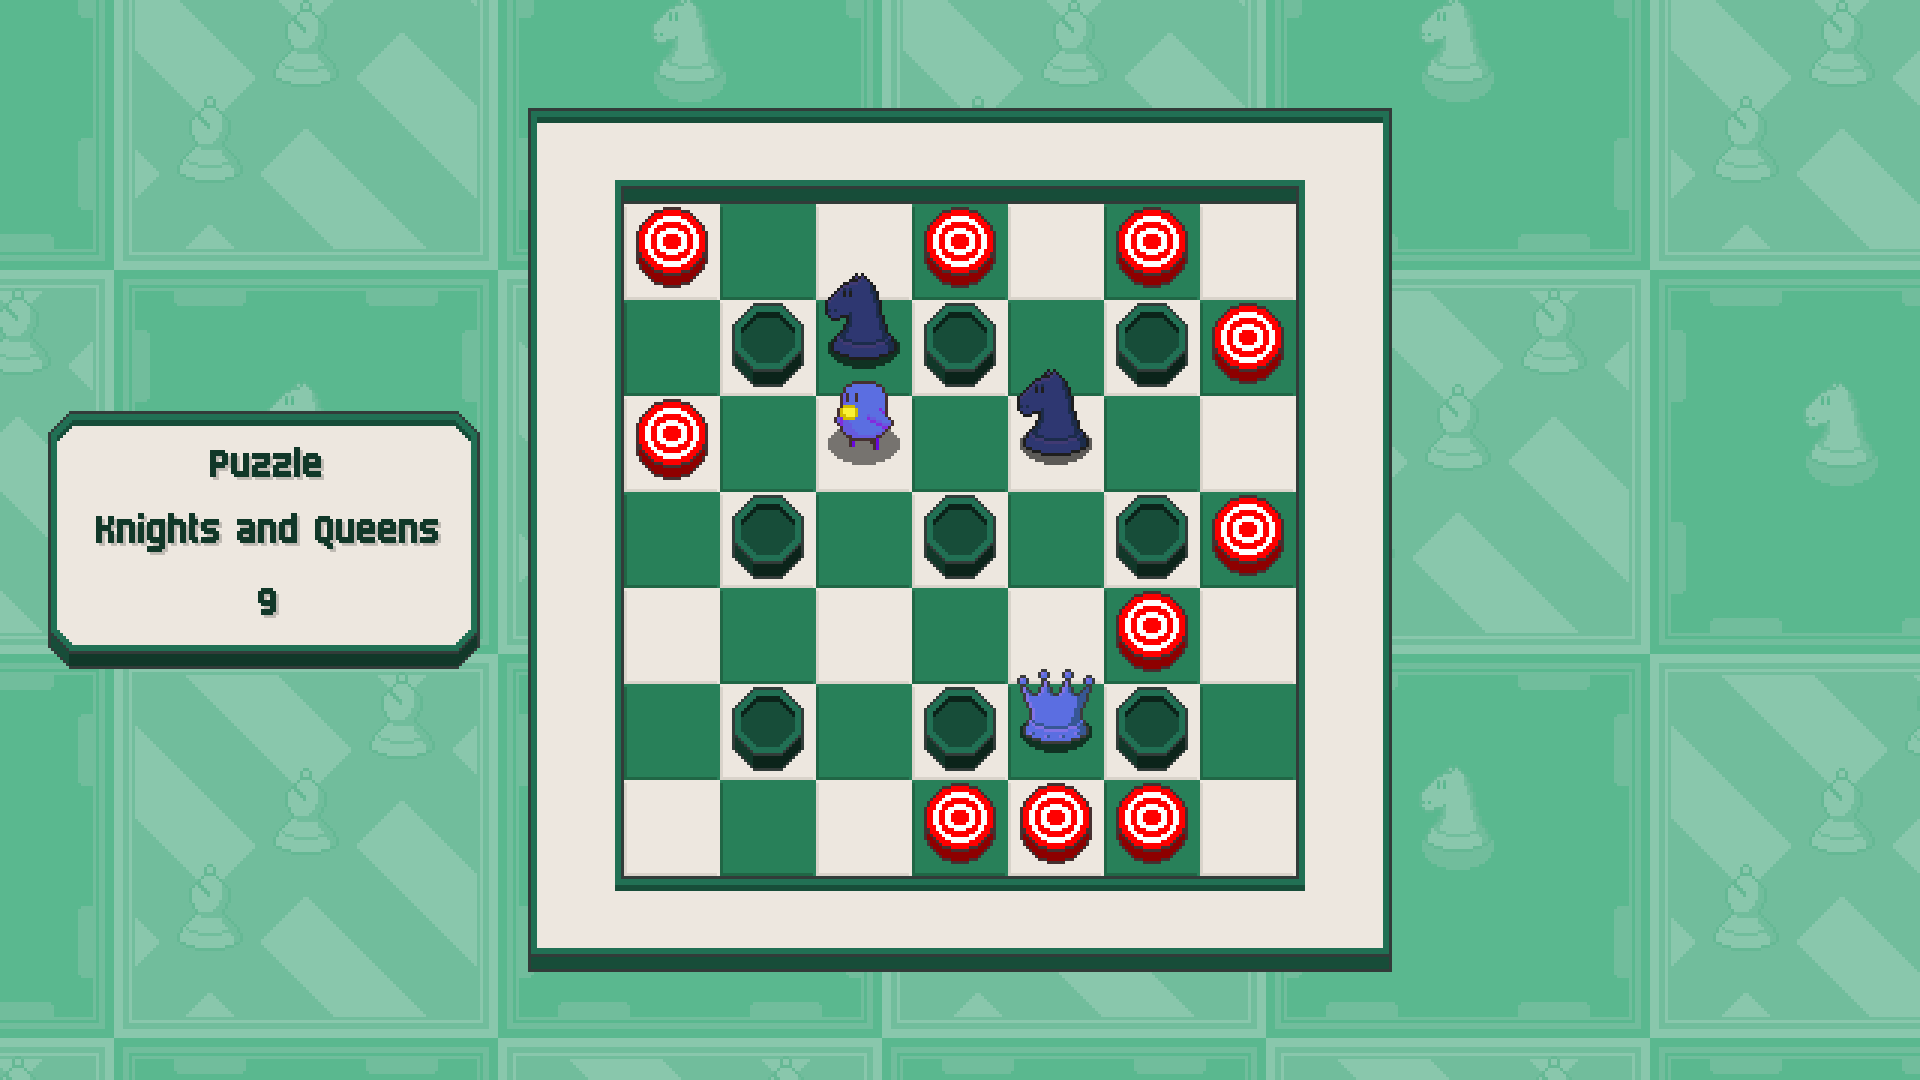 Chessplosion - Puzzle Solution Guide + Achievements Walkthrough - Grandblaster: Knights and Queens - CFB88B3